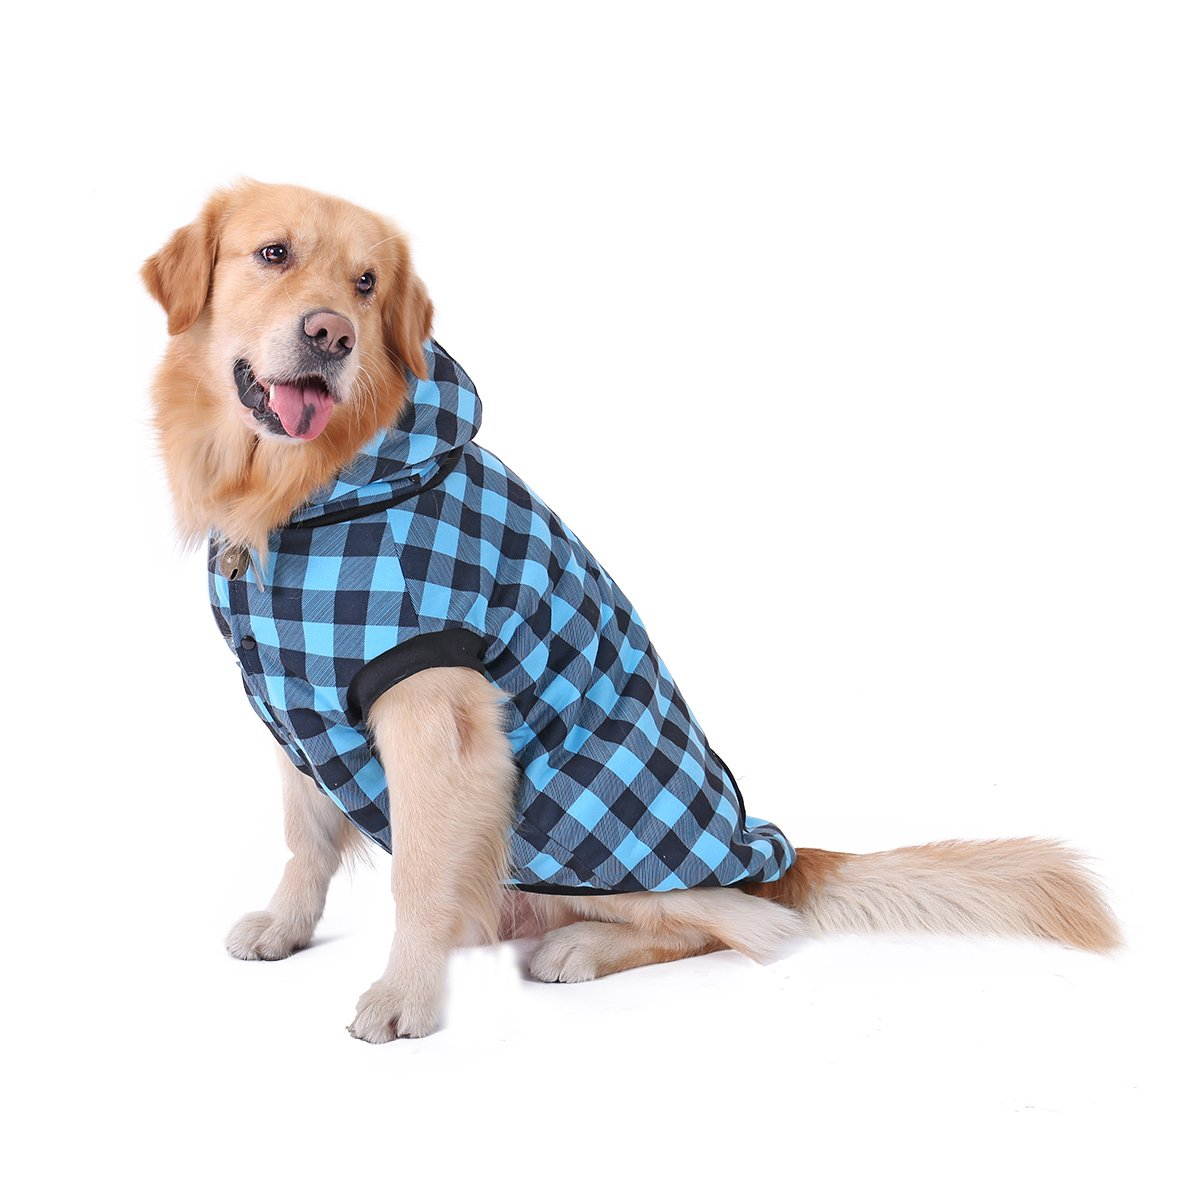 bluee 4XL(Chest 35.4\ bluee 4XL(Chest 35.4\ PAWZ Road Dog Plaid Shirt Coat Hoodie Pet Winter Clothes Warm and Soft for Medium and Large Dogs,Upgrade Version bluee 4XL